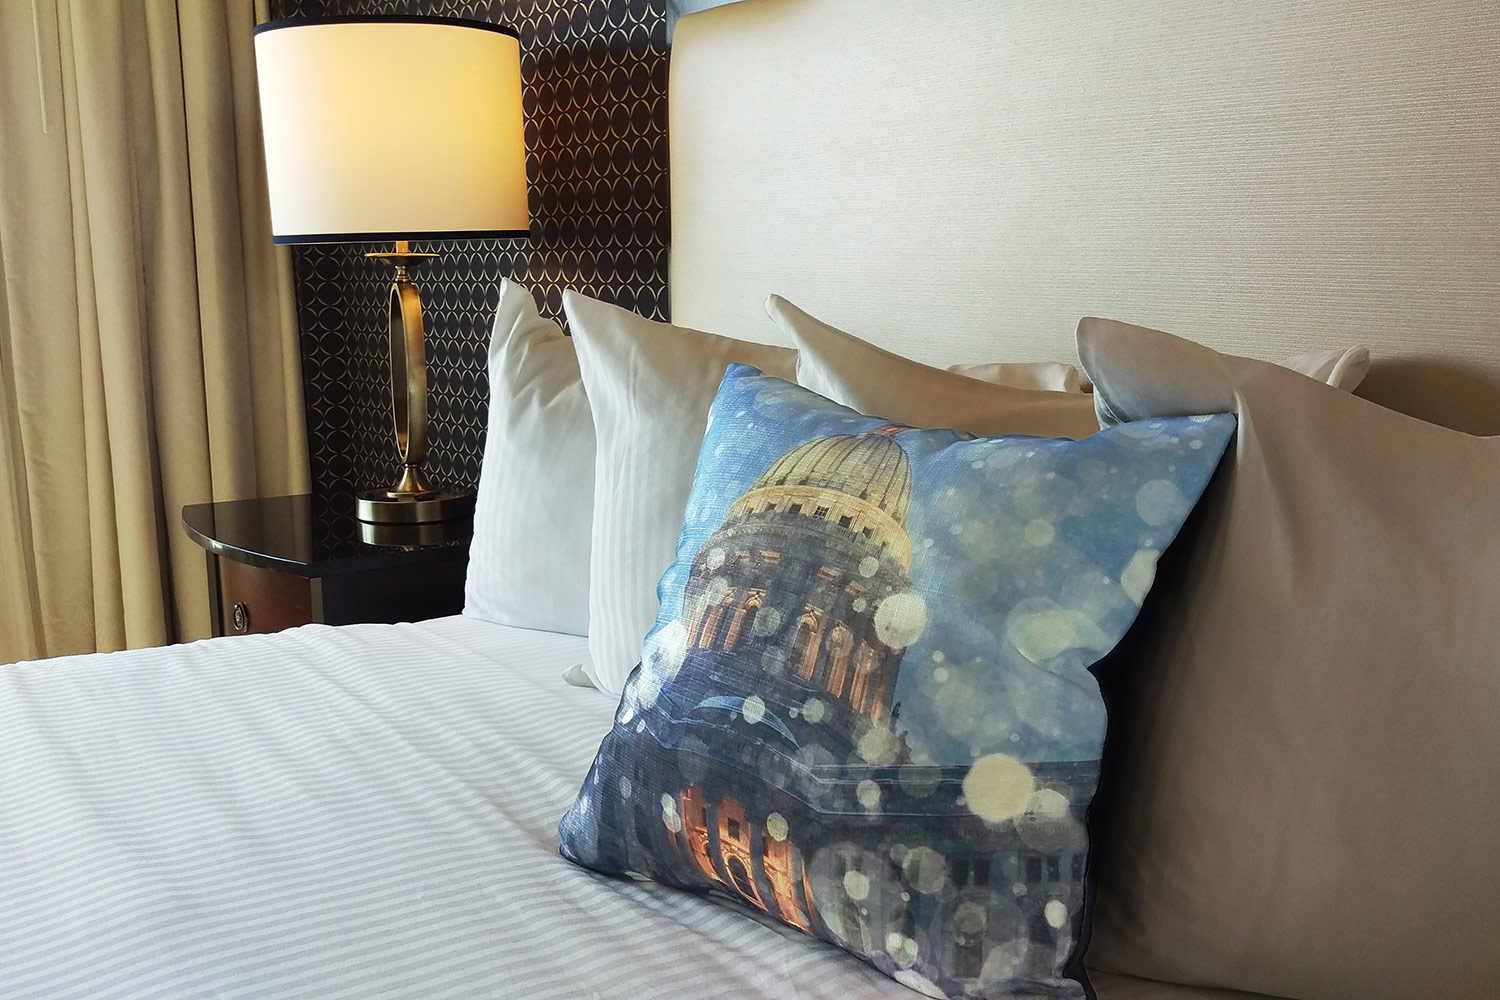 Commercial-Art-Hotel-Pillows-01.jpg